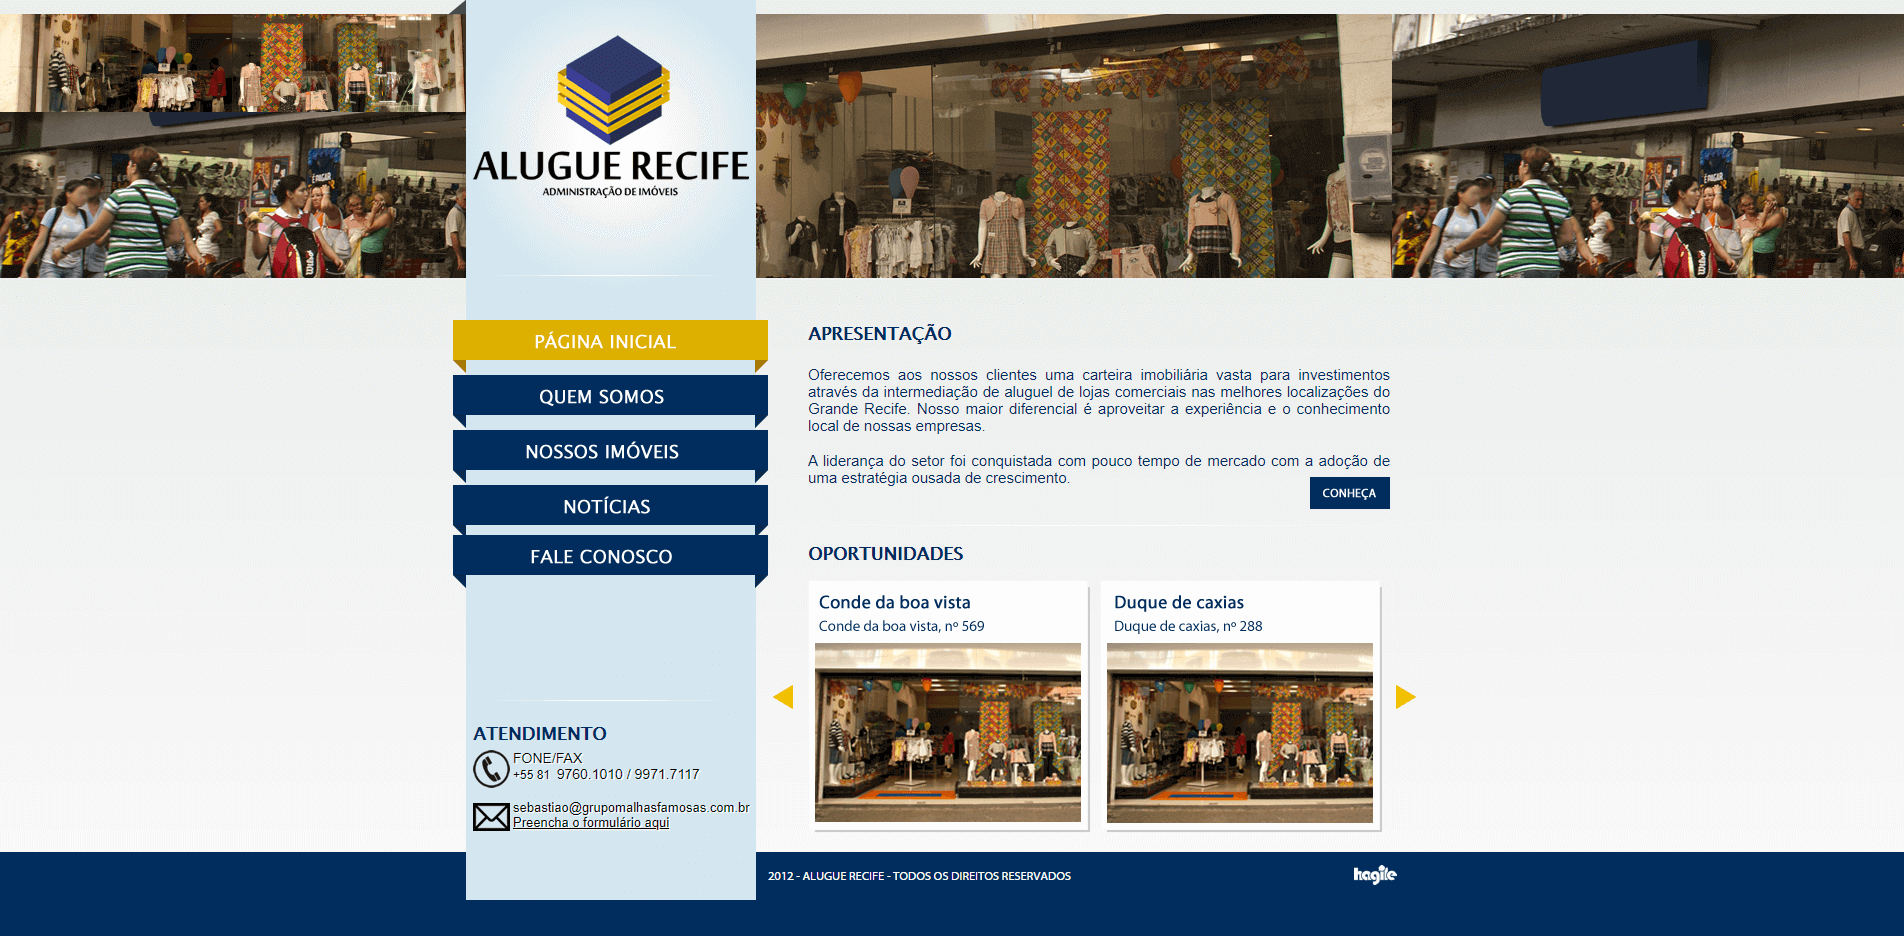 alugue-recife